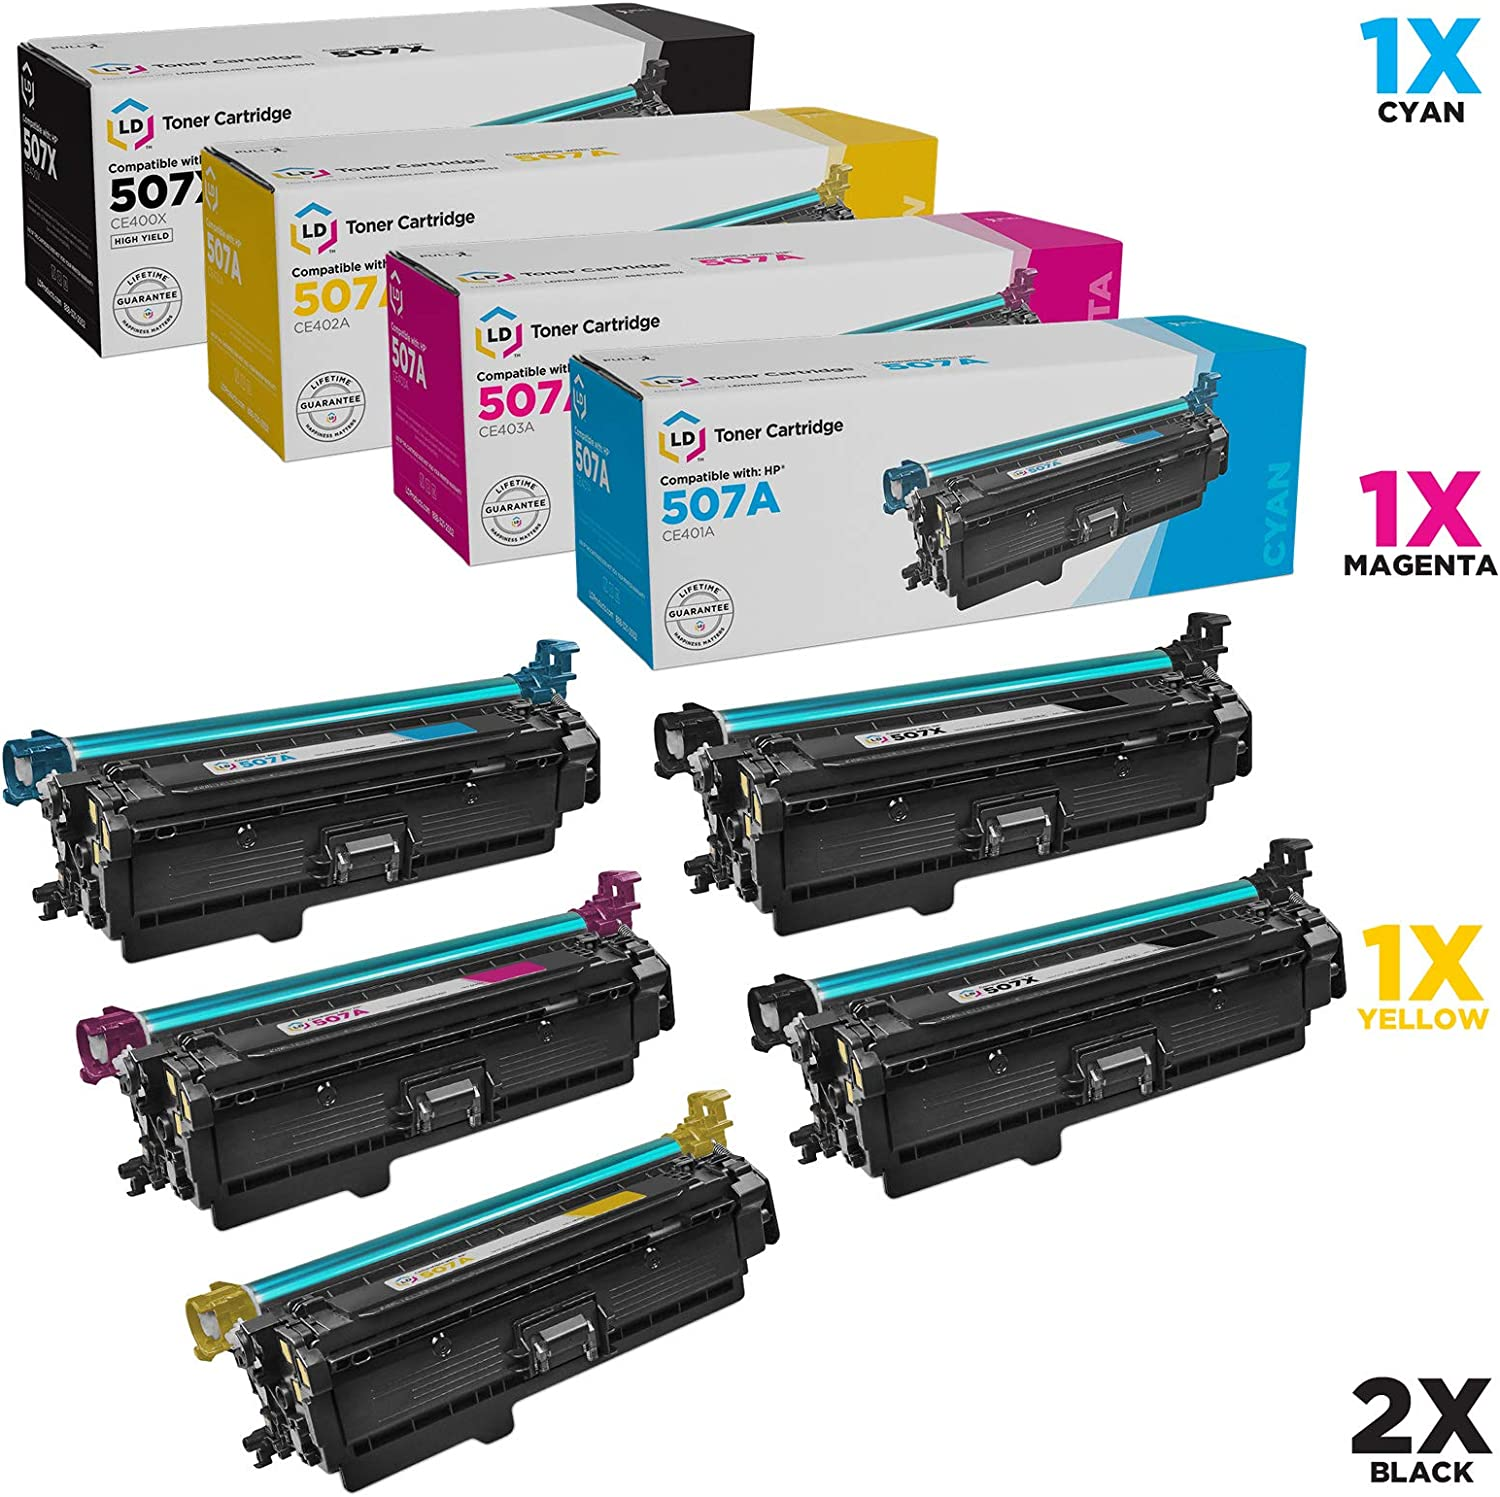 LD Remanufactured Toner Cartridge Replacements for HP 507A & HP 507X High Yield (2 Black, 1 Cyan, 1 Magenta, 1 Yellow, 5-Pack)